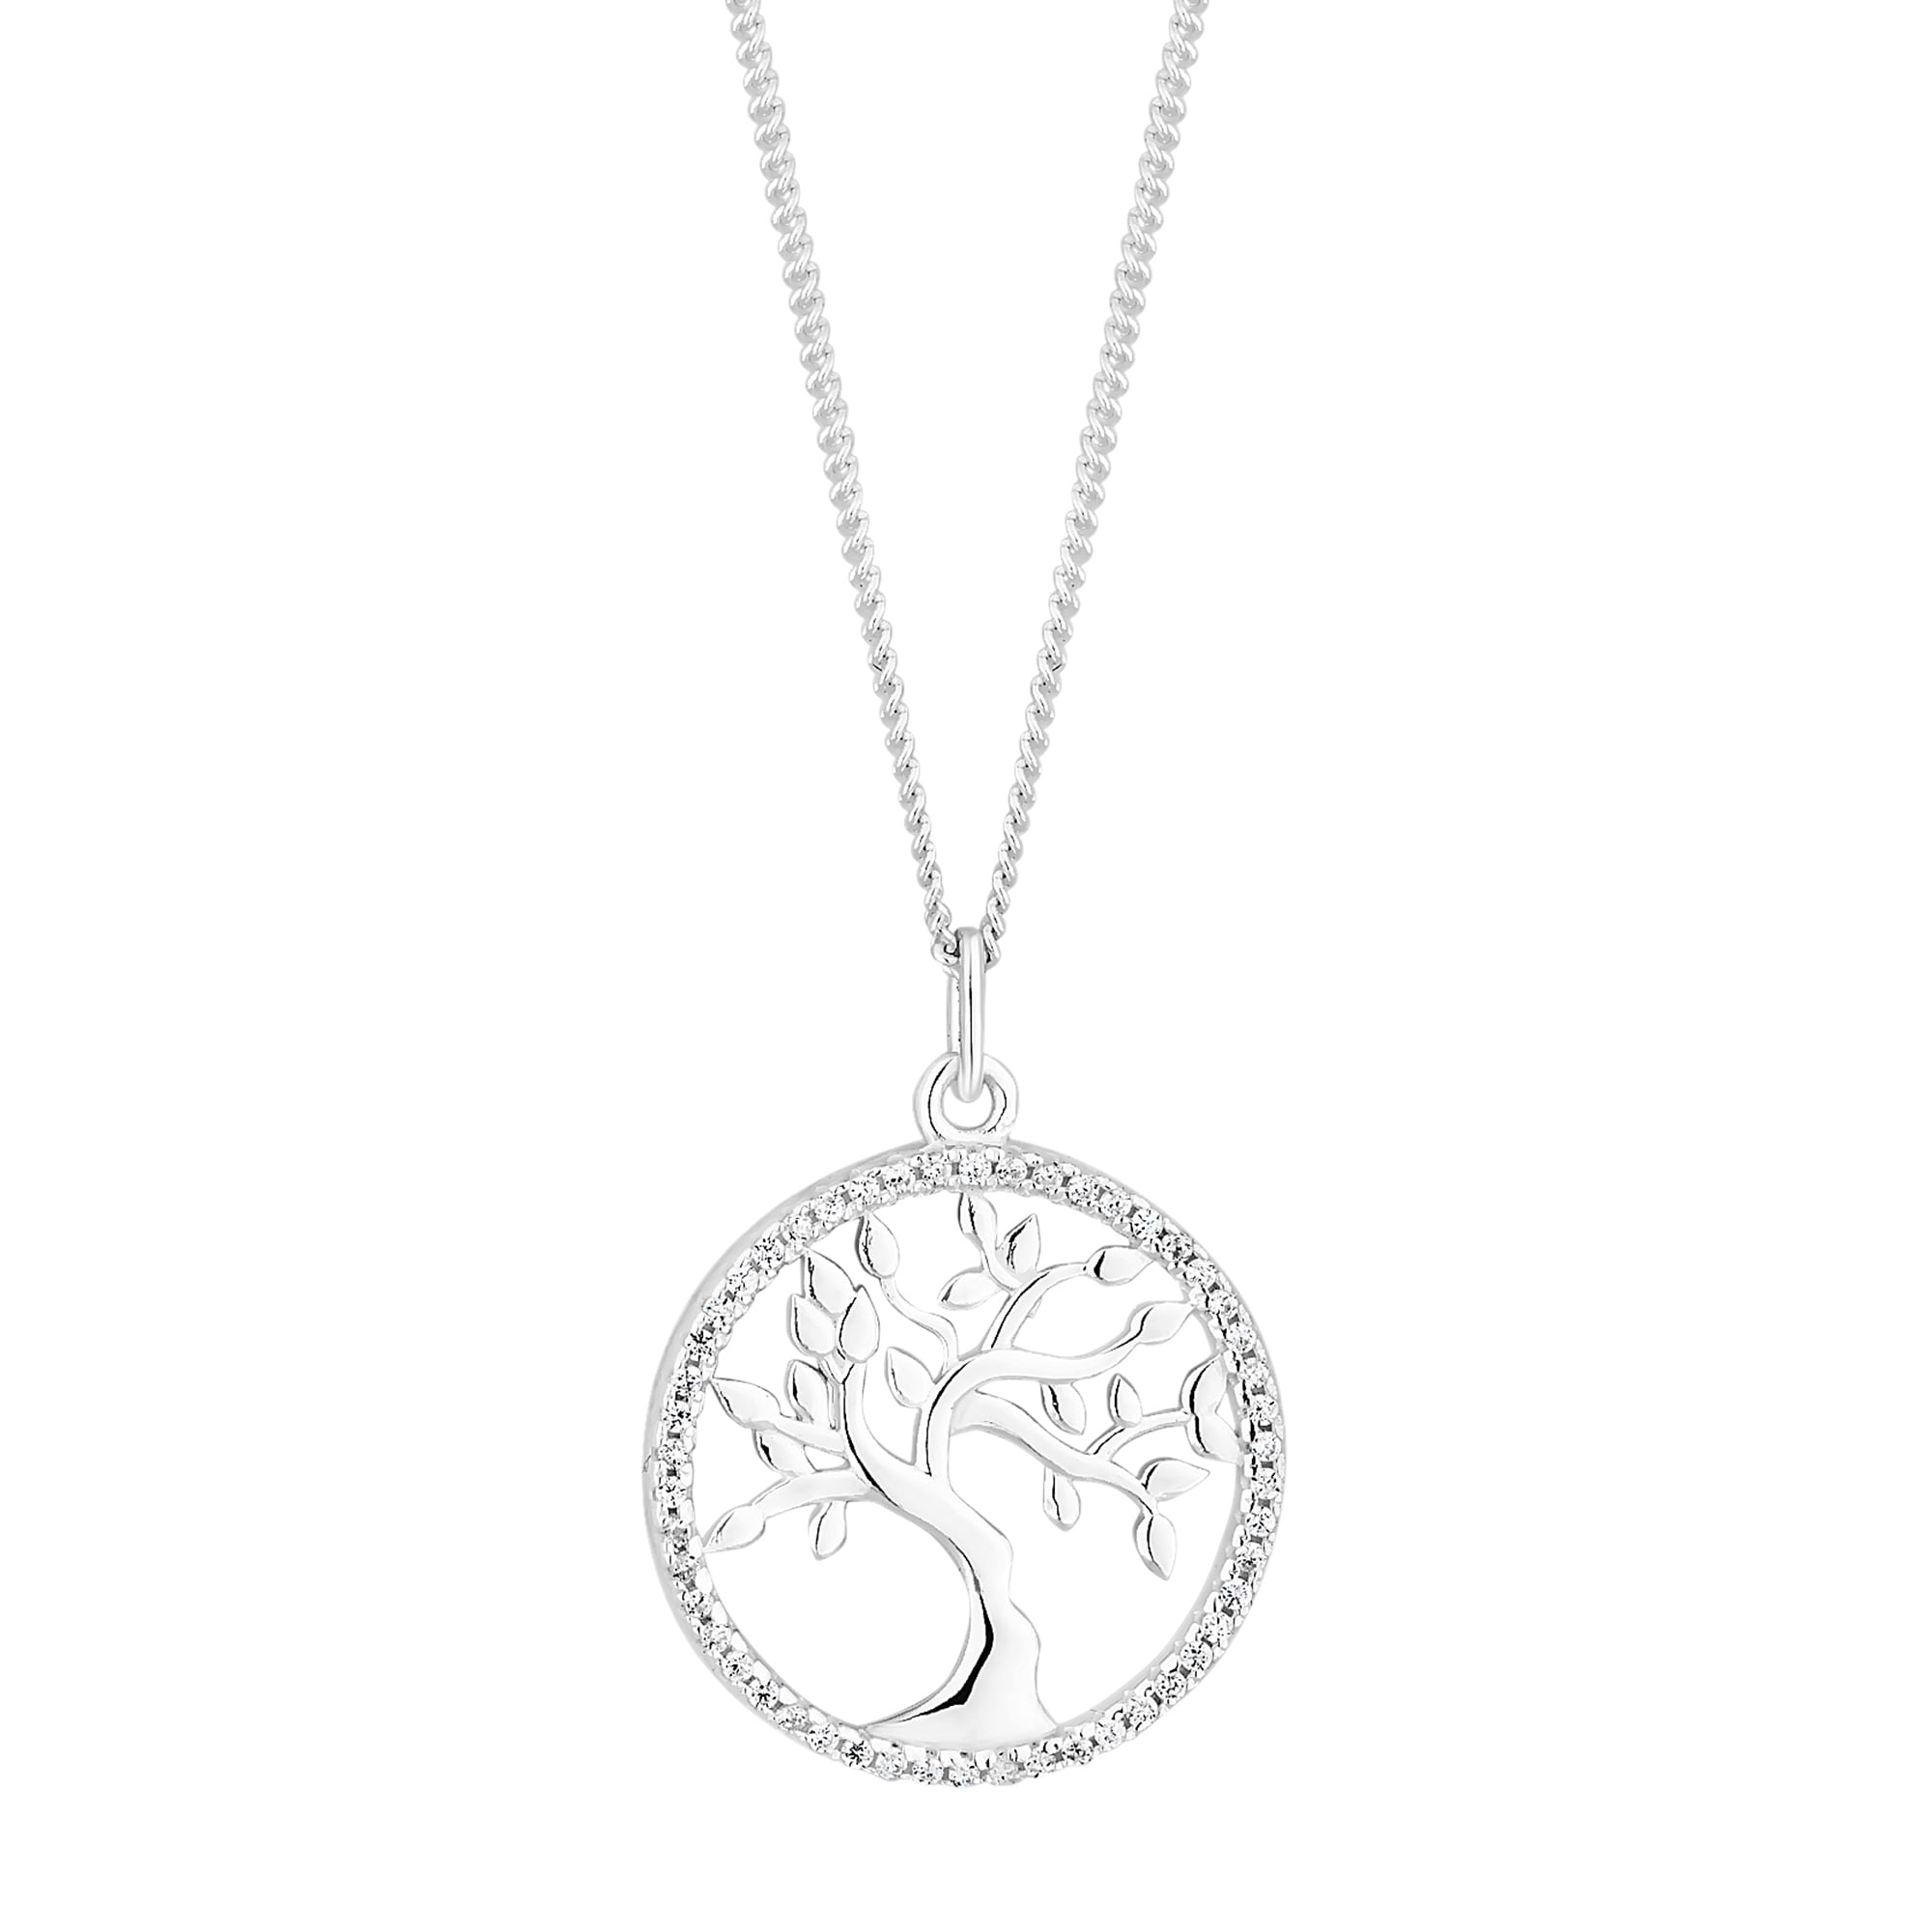 of necklace lincoln cathedral pendant silver sterling tree product life